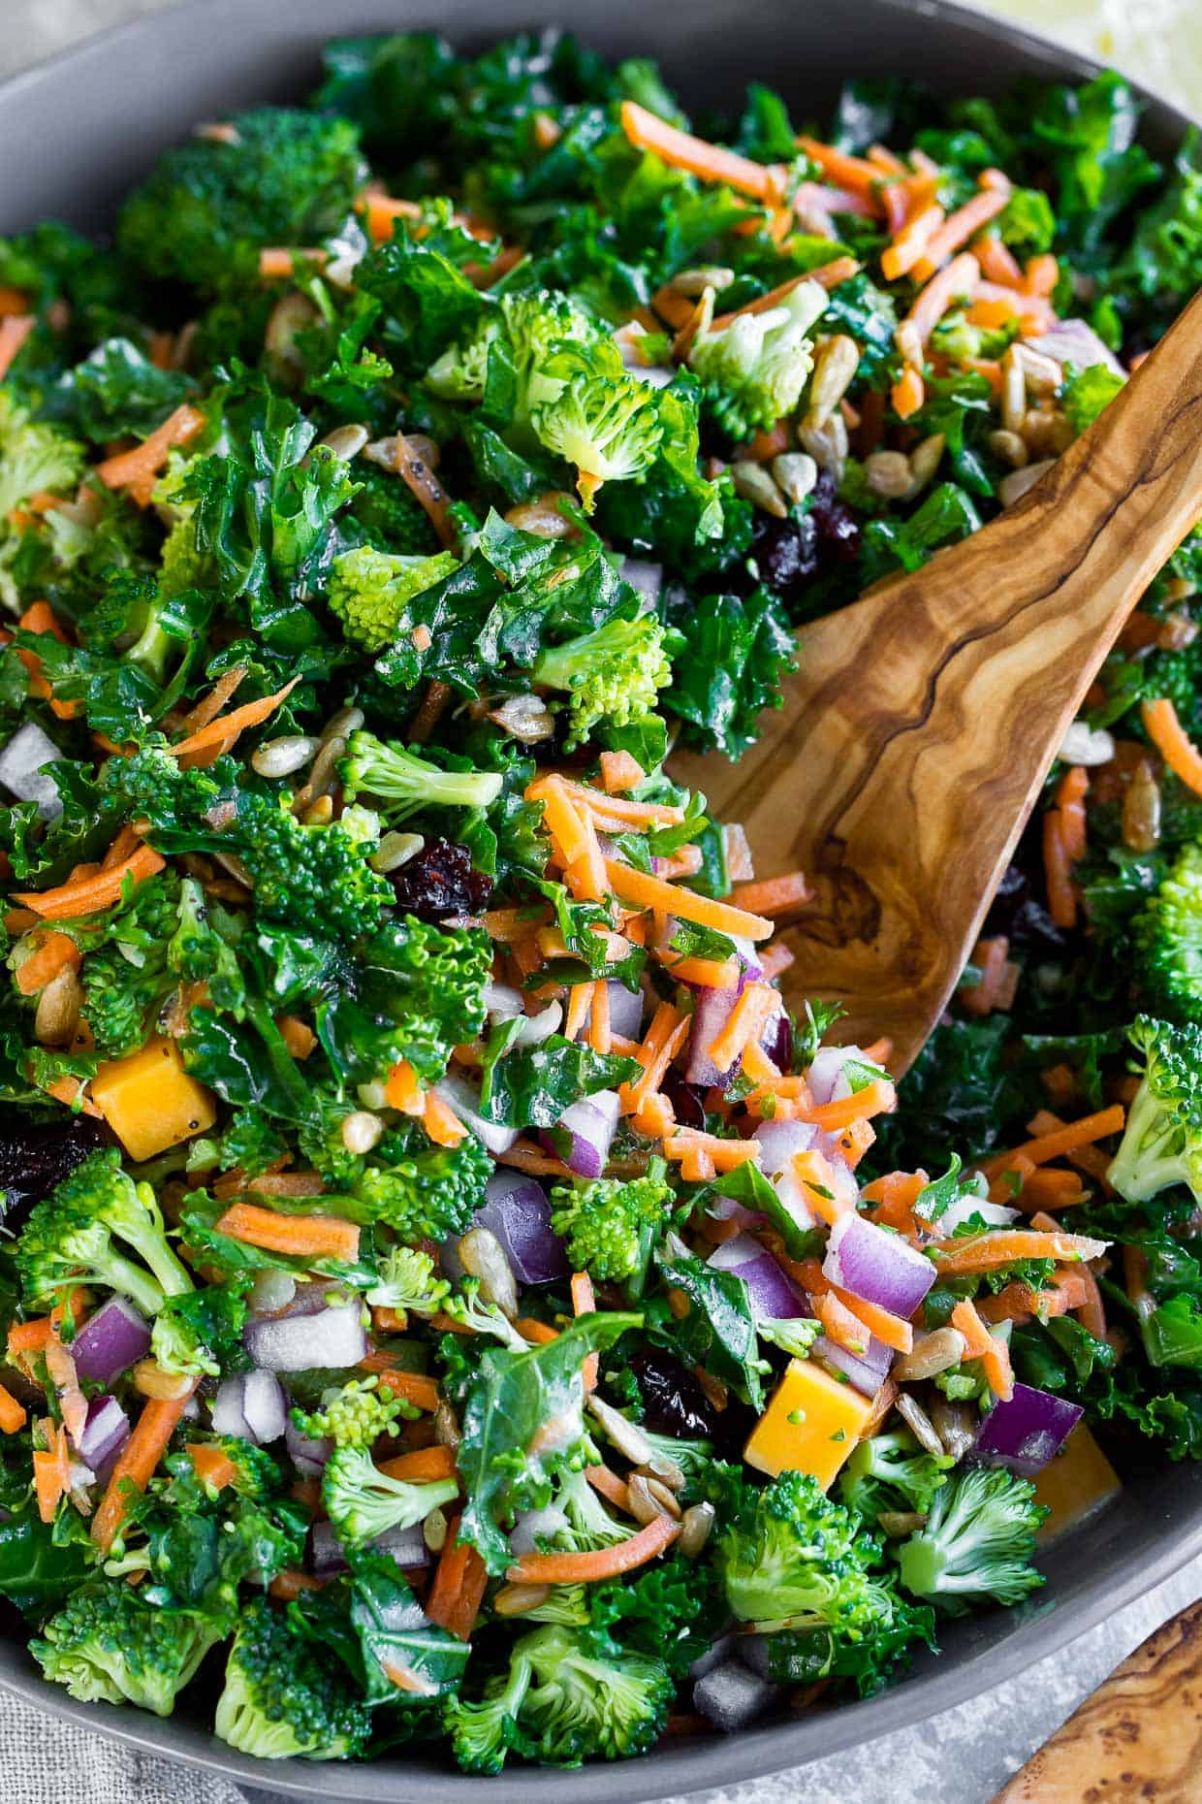 Easy Kale Salad with Fresh Lemon Dressing - Salad Recipes You Can Make Ahead